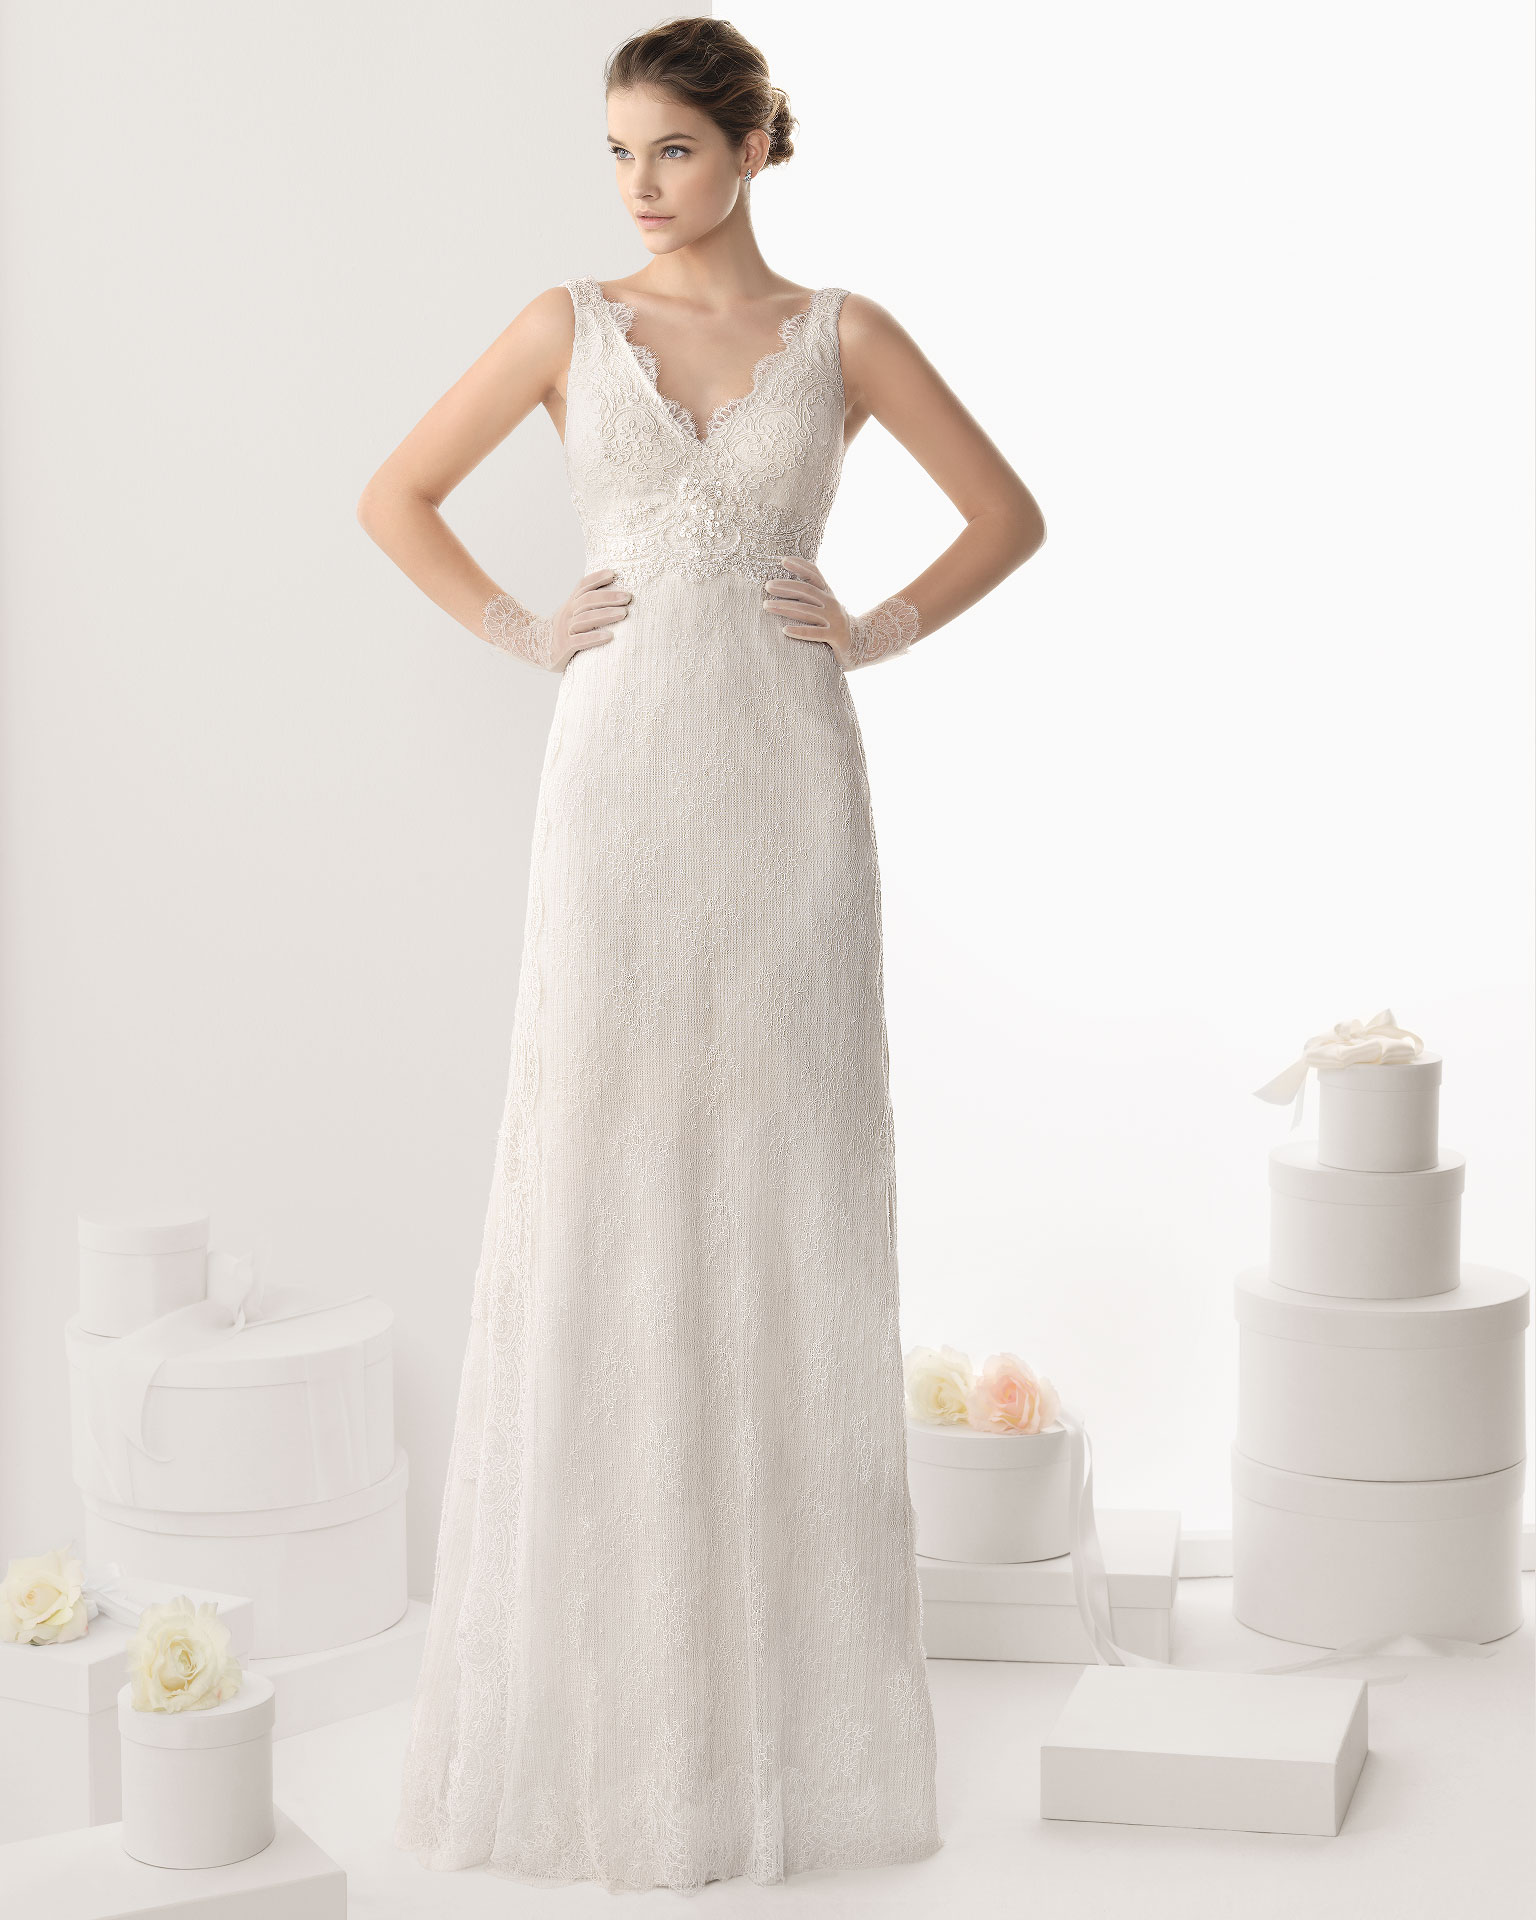 Nectarean A-line Strapless Lace Sequins Floor-length Tulle wedding dress